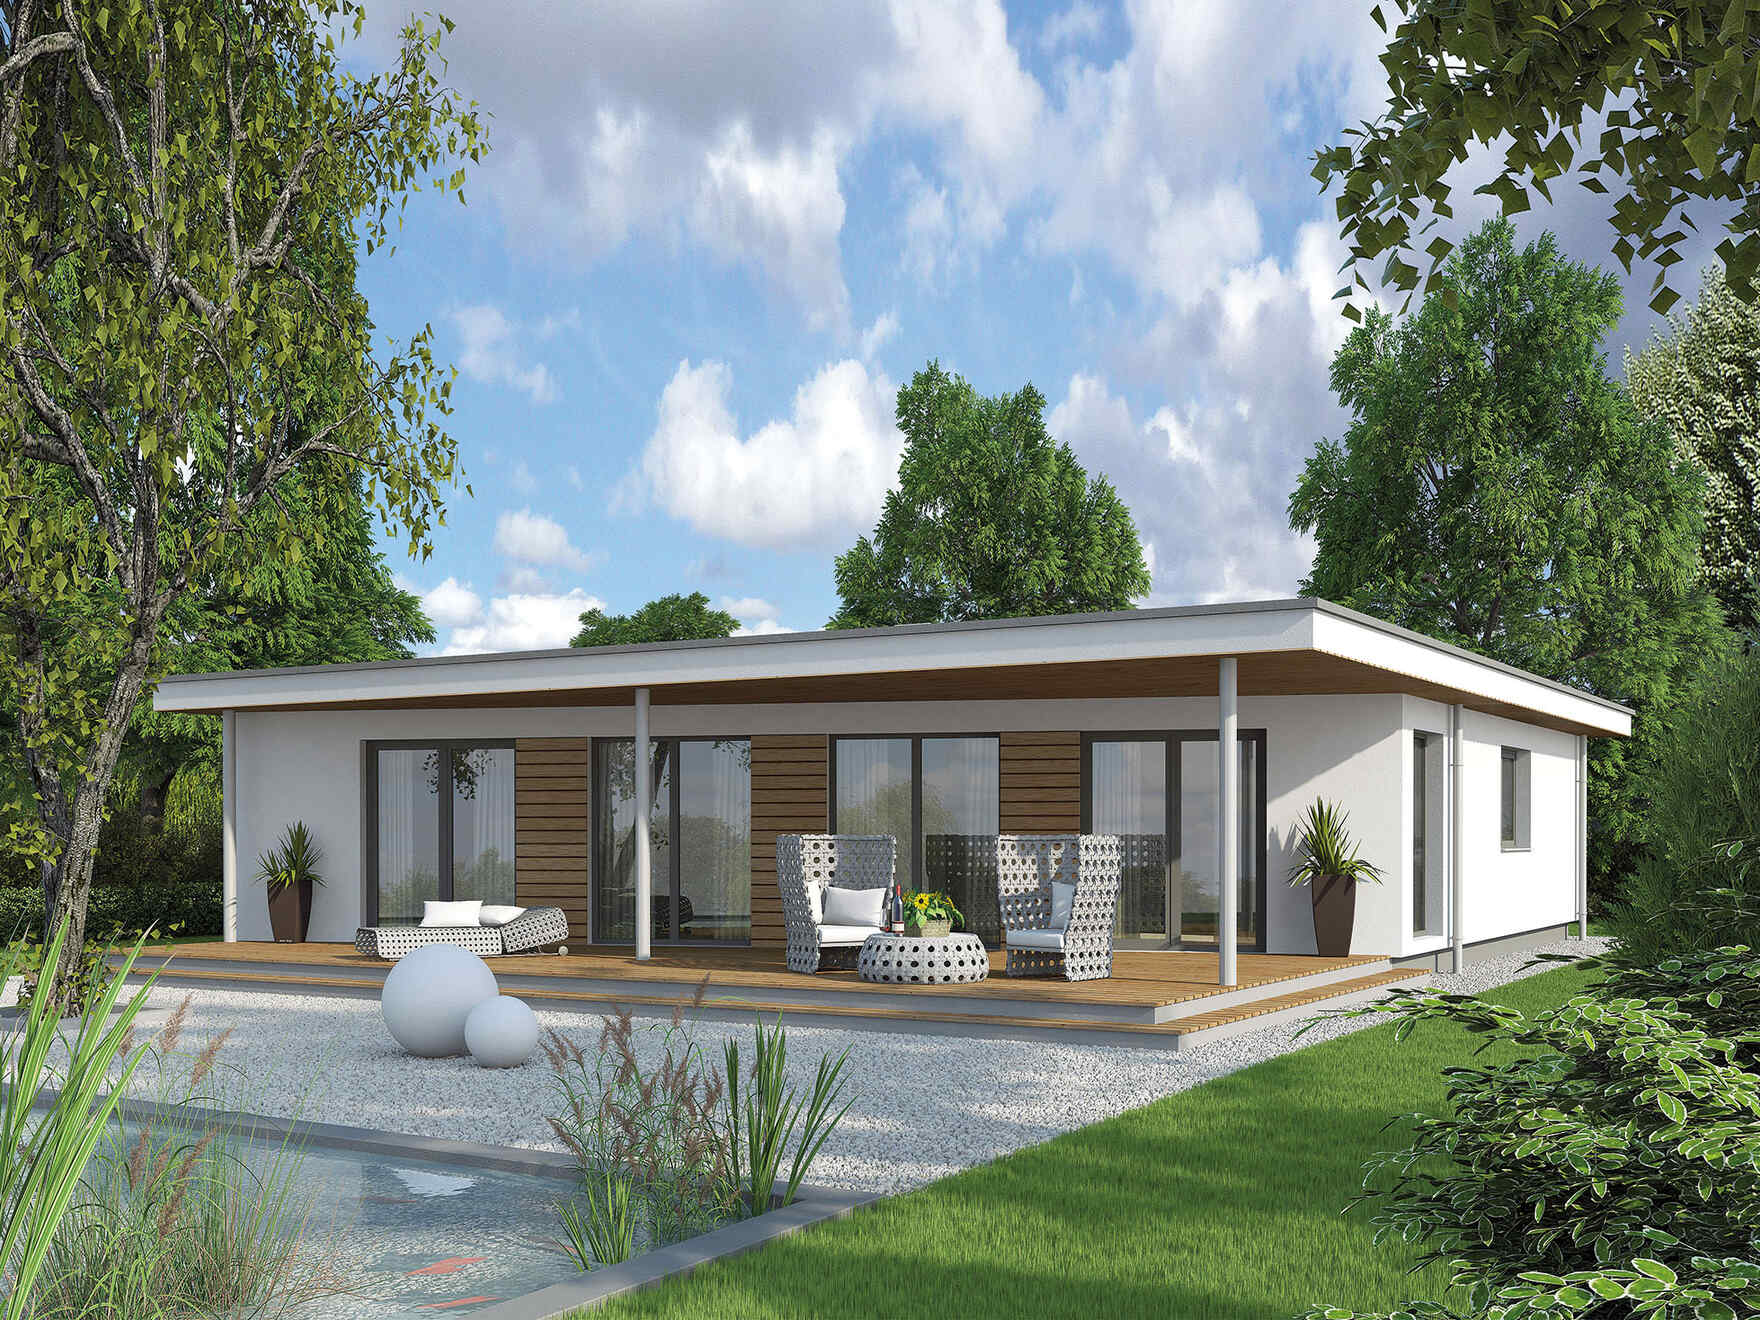 Bungalow We 136 Vario Haus Prefabricated Houses